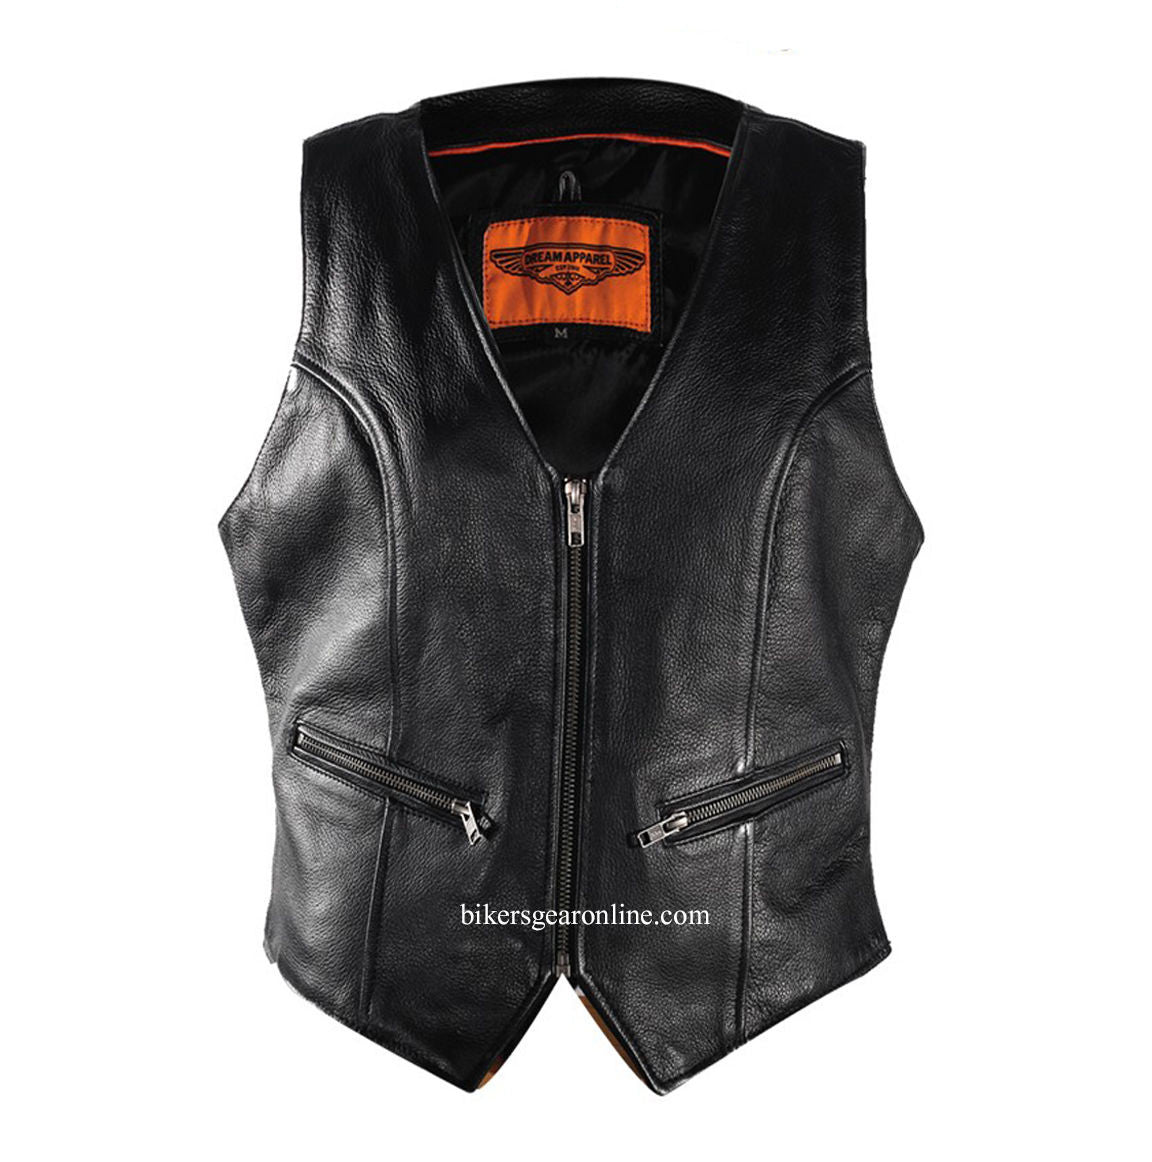 WOMEN'S RIDING SOFT LEATHER VEST W/ BACK LACES